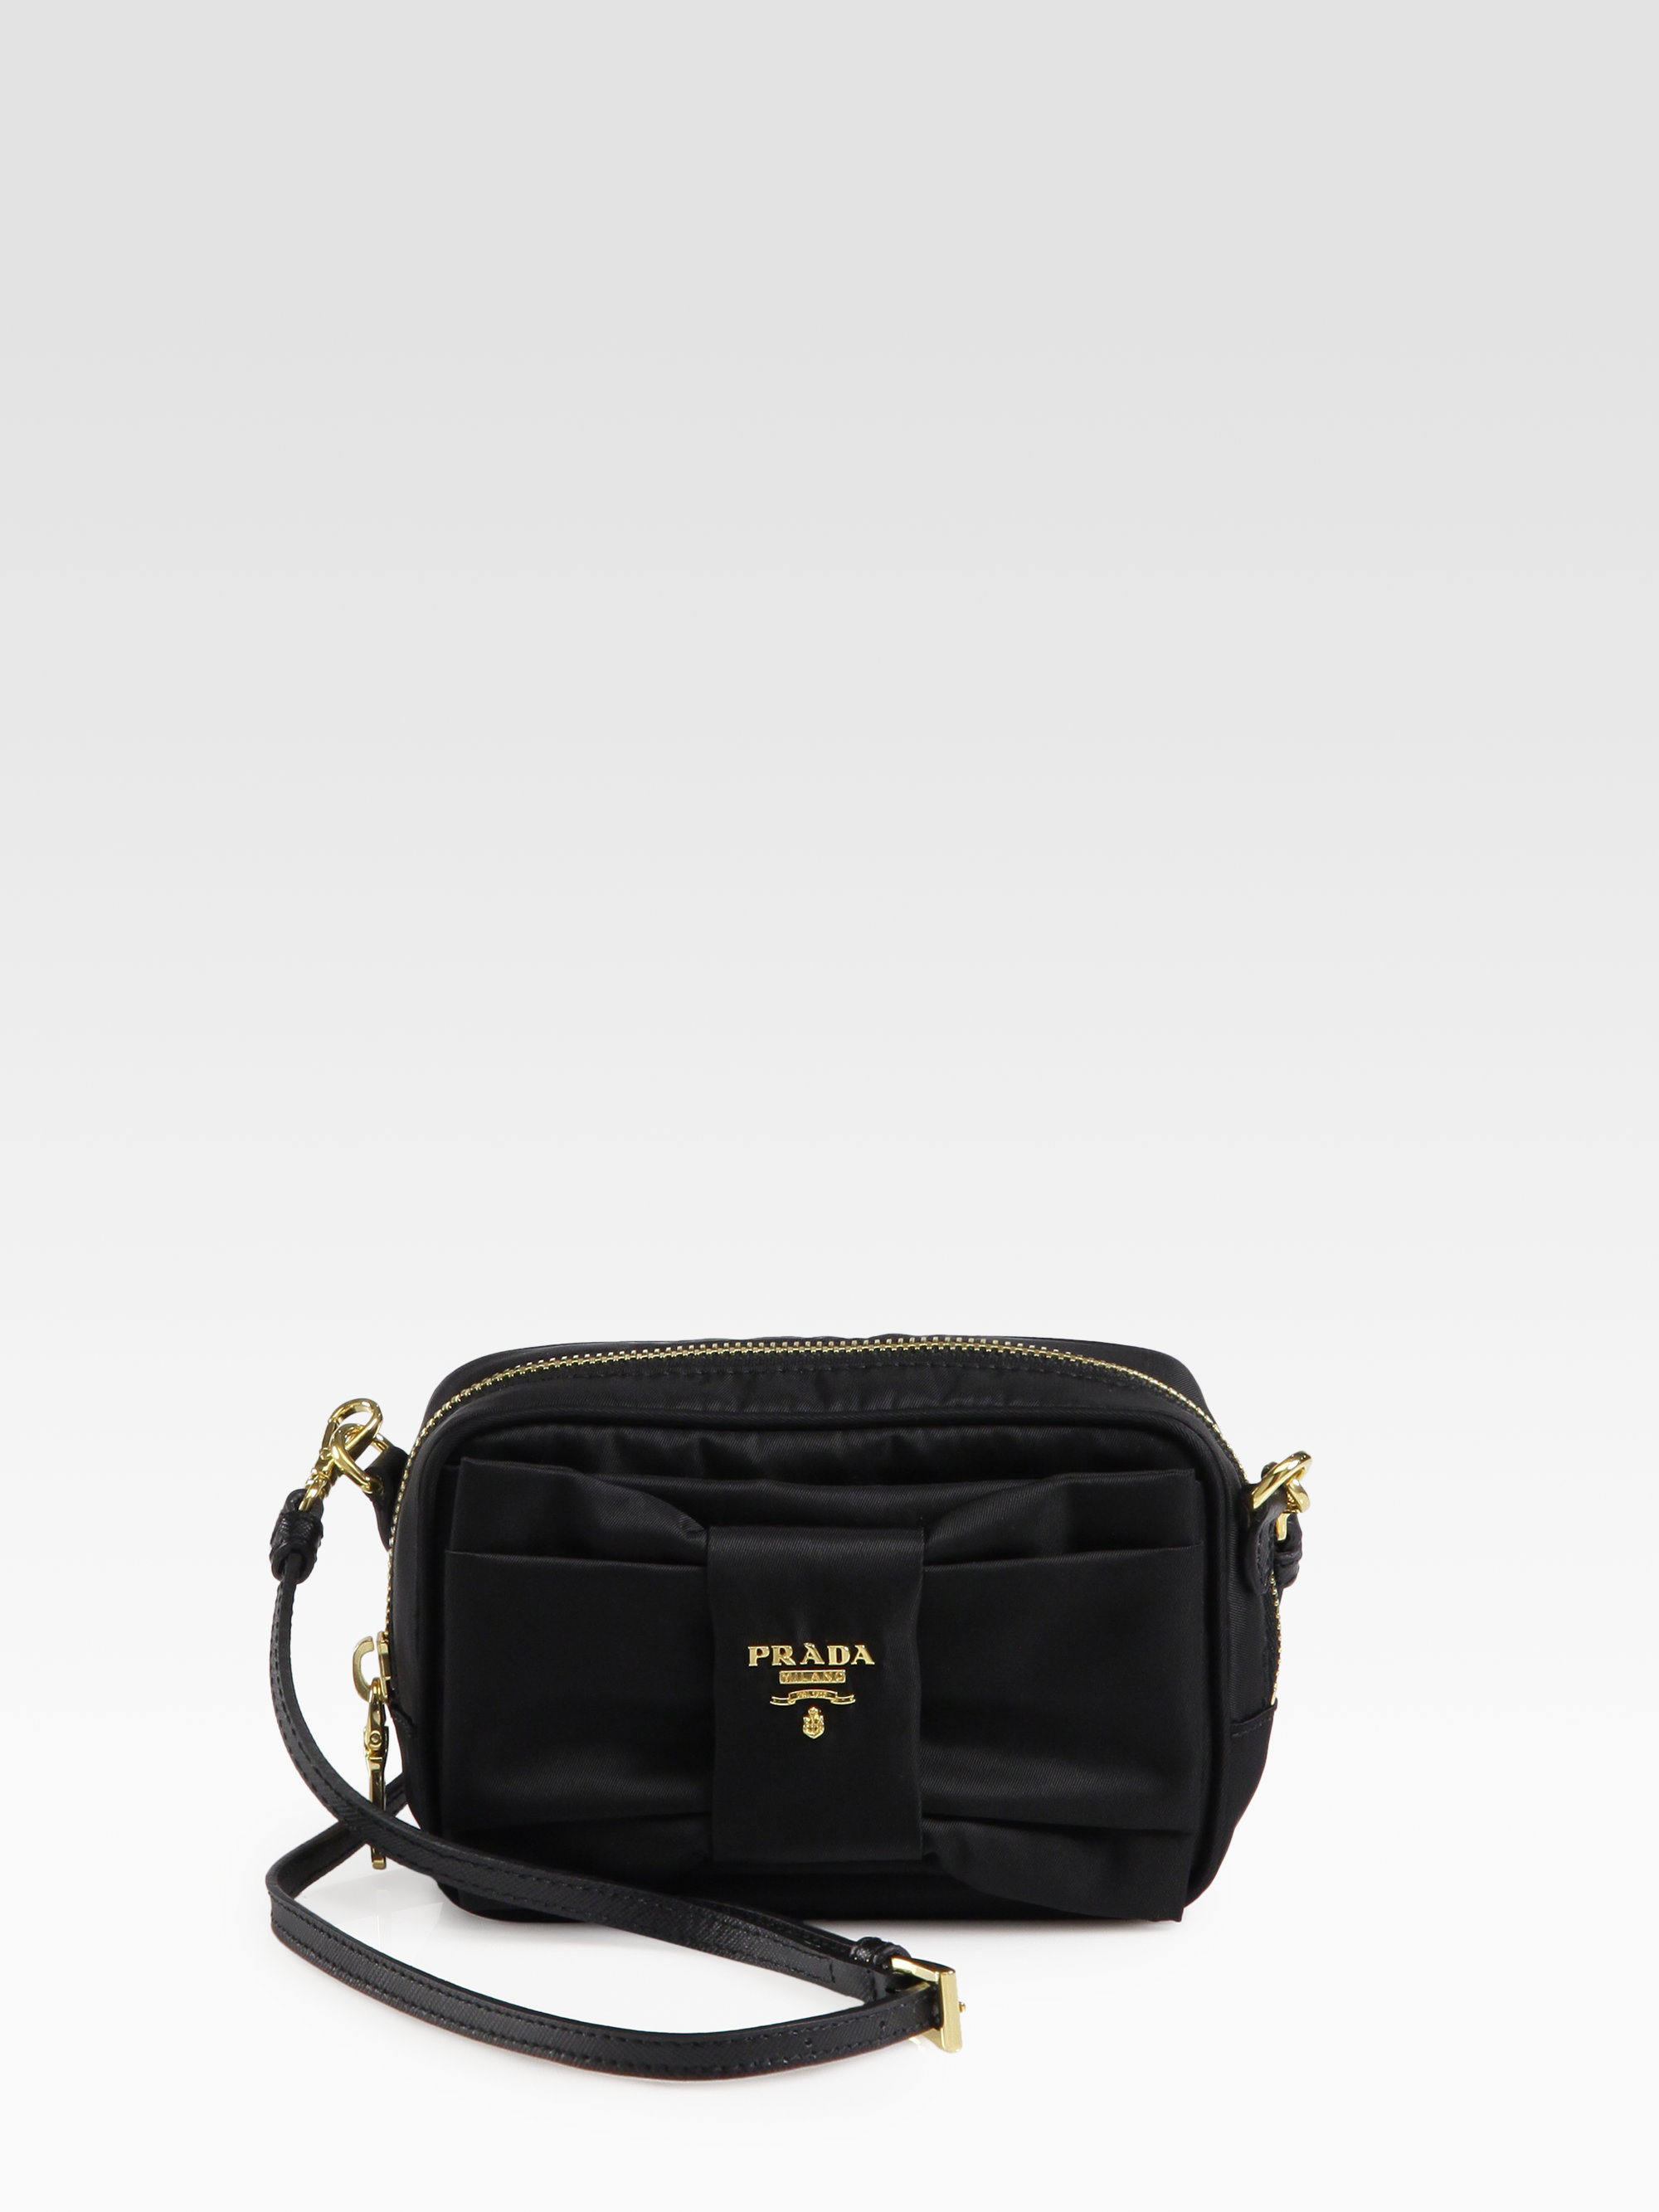 c57a3e257a62 Prada Tessuto Bow-Detail Cross-Body Bag in Black - Lyst